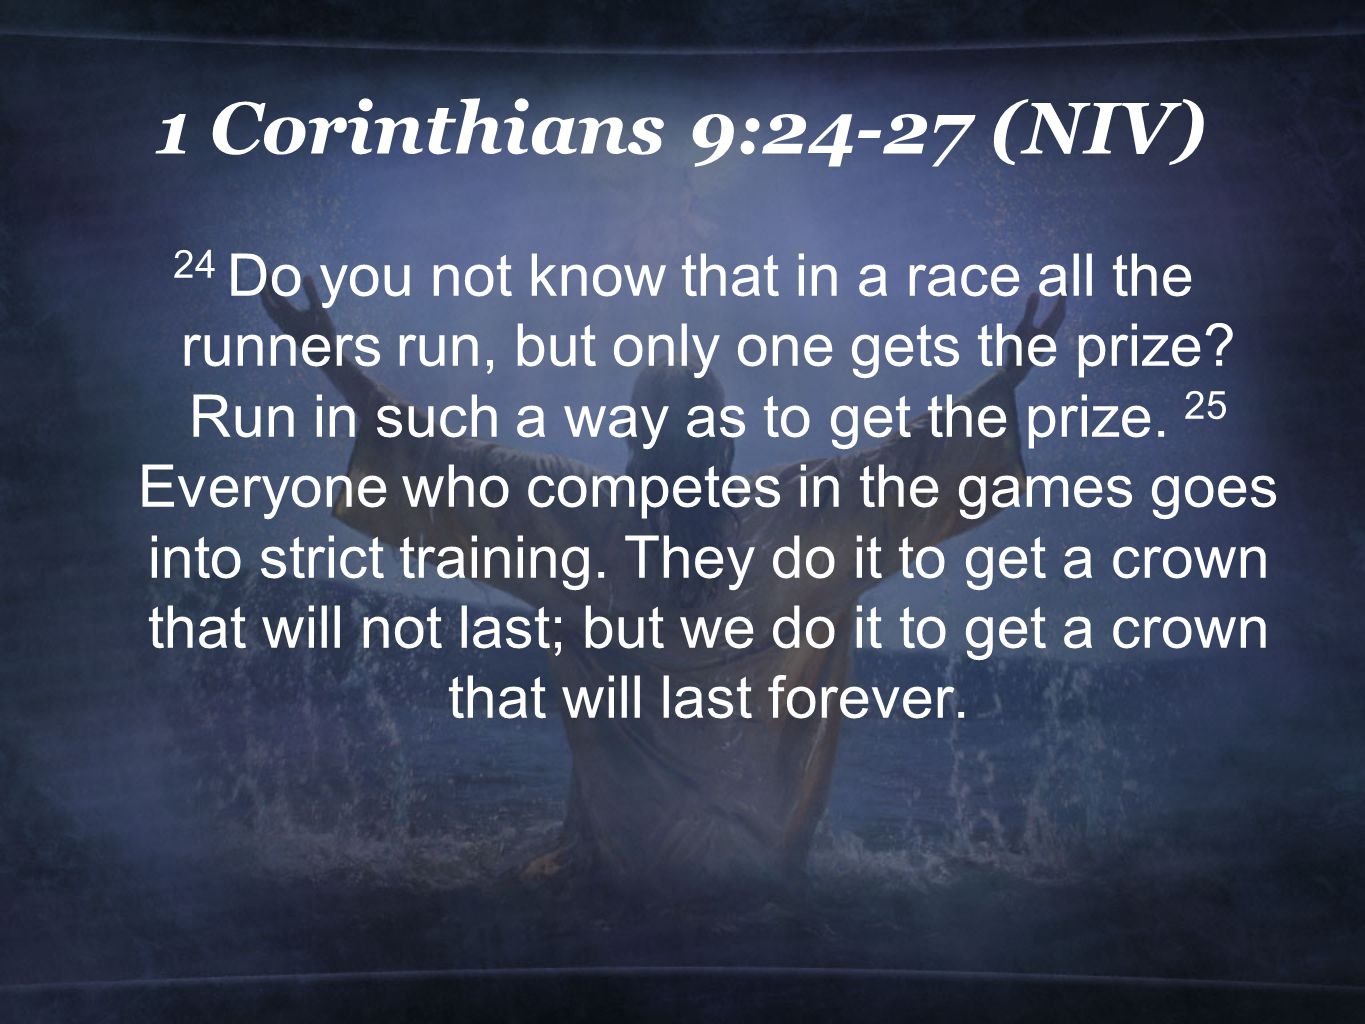 1 Corinthians 9:24-27 (NIV) 26 Therefore I do not run like a man running aimlessly; I do not fight like a man beating the air.